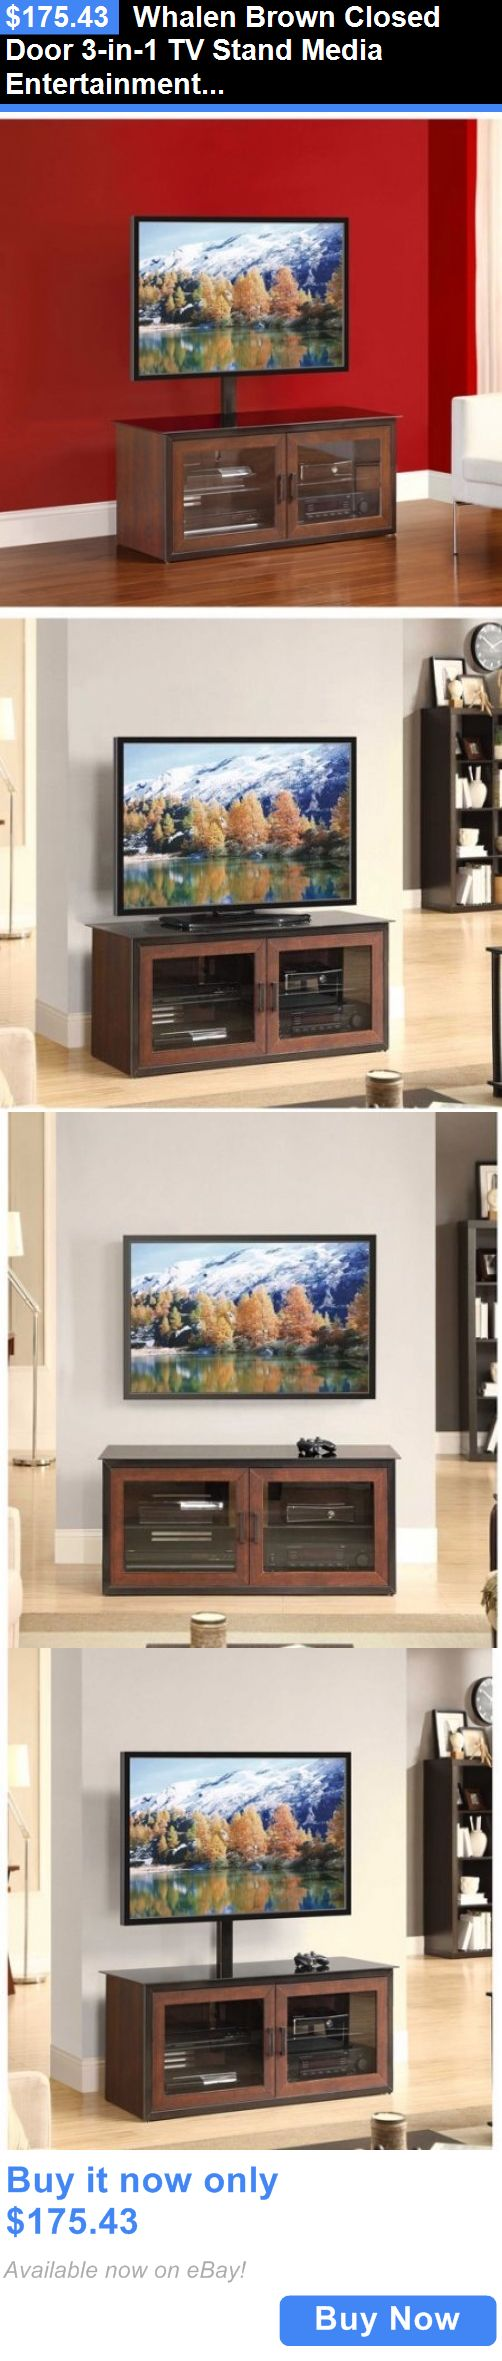 Entertainment Units TV Stands: Whalen Brown Closed Door 3-In-1 Tv Stand Media Entertainment Center Furniture BUY IT NOW ONLY: $175.43